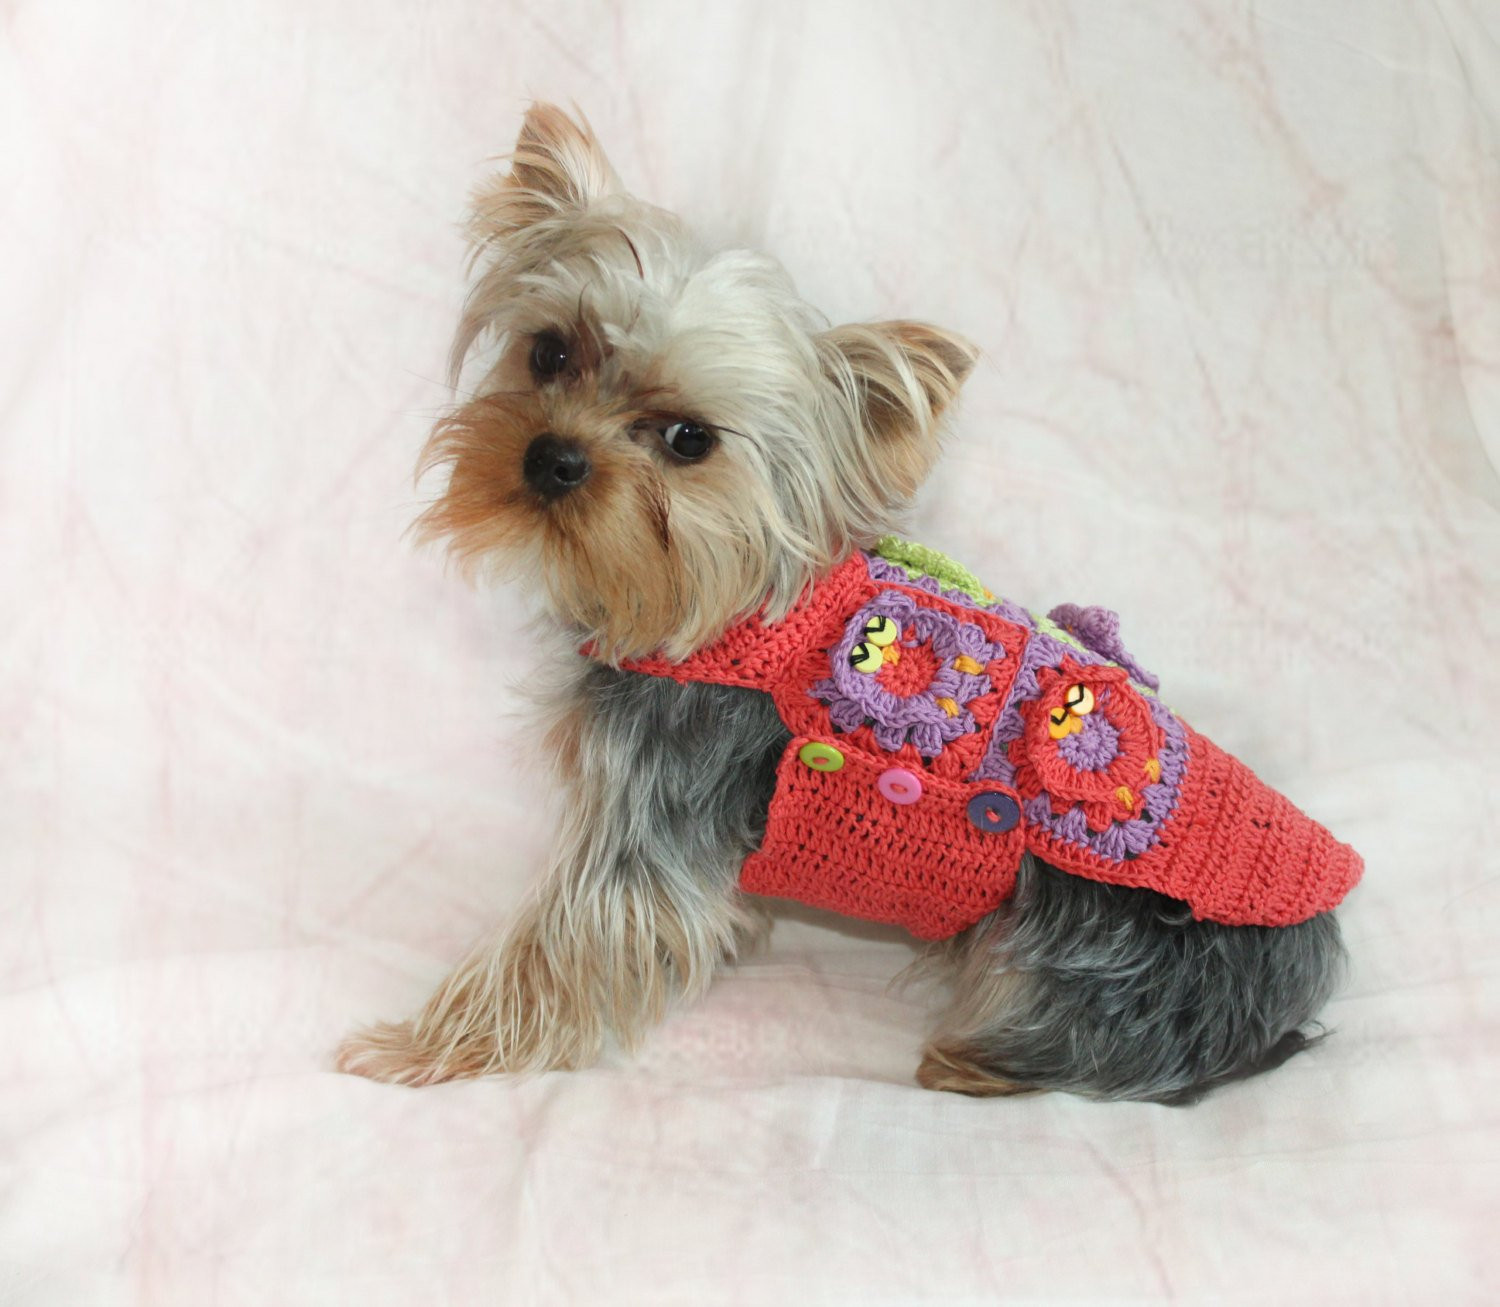 Crochet Small Dog Sweater Lovely Crochet Dog Sweater Crochet Pet Cotton Sweater with Owls Of Amazing 48 Models Crochet Small Dog Sweater